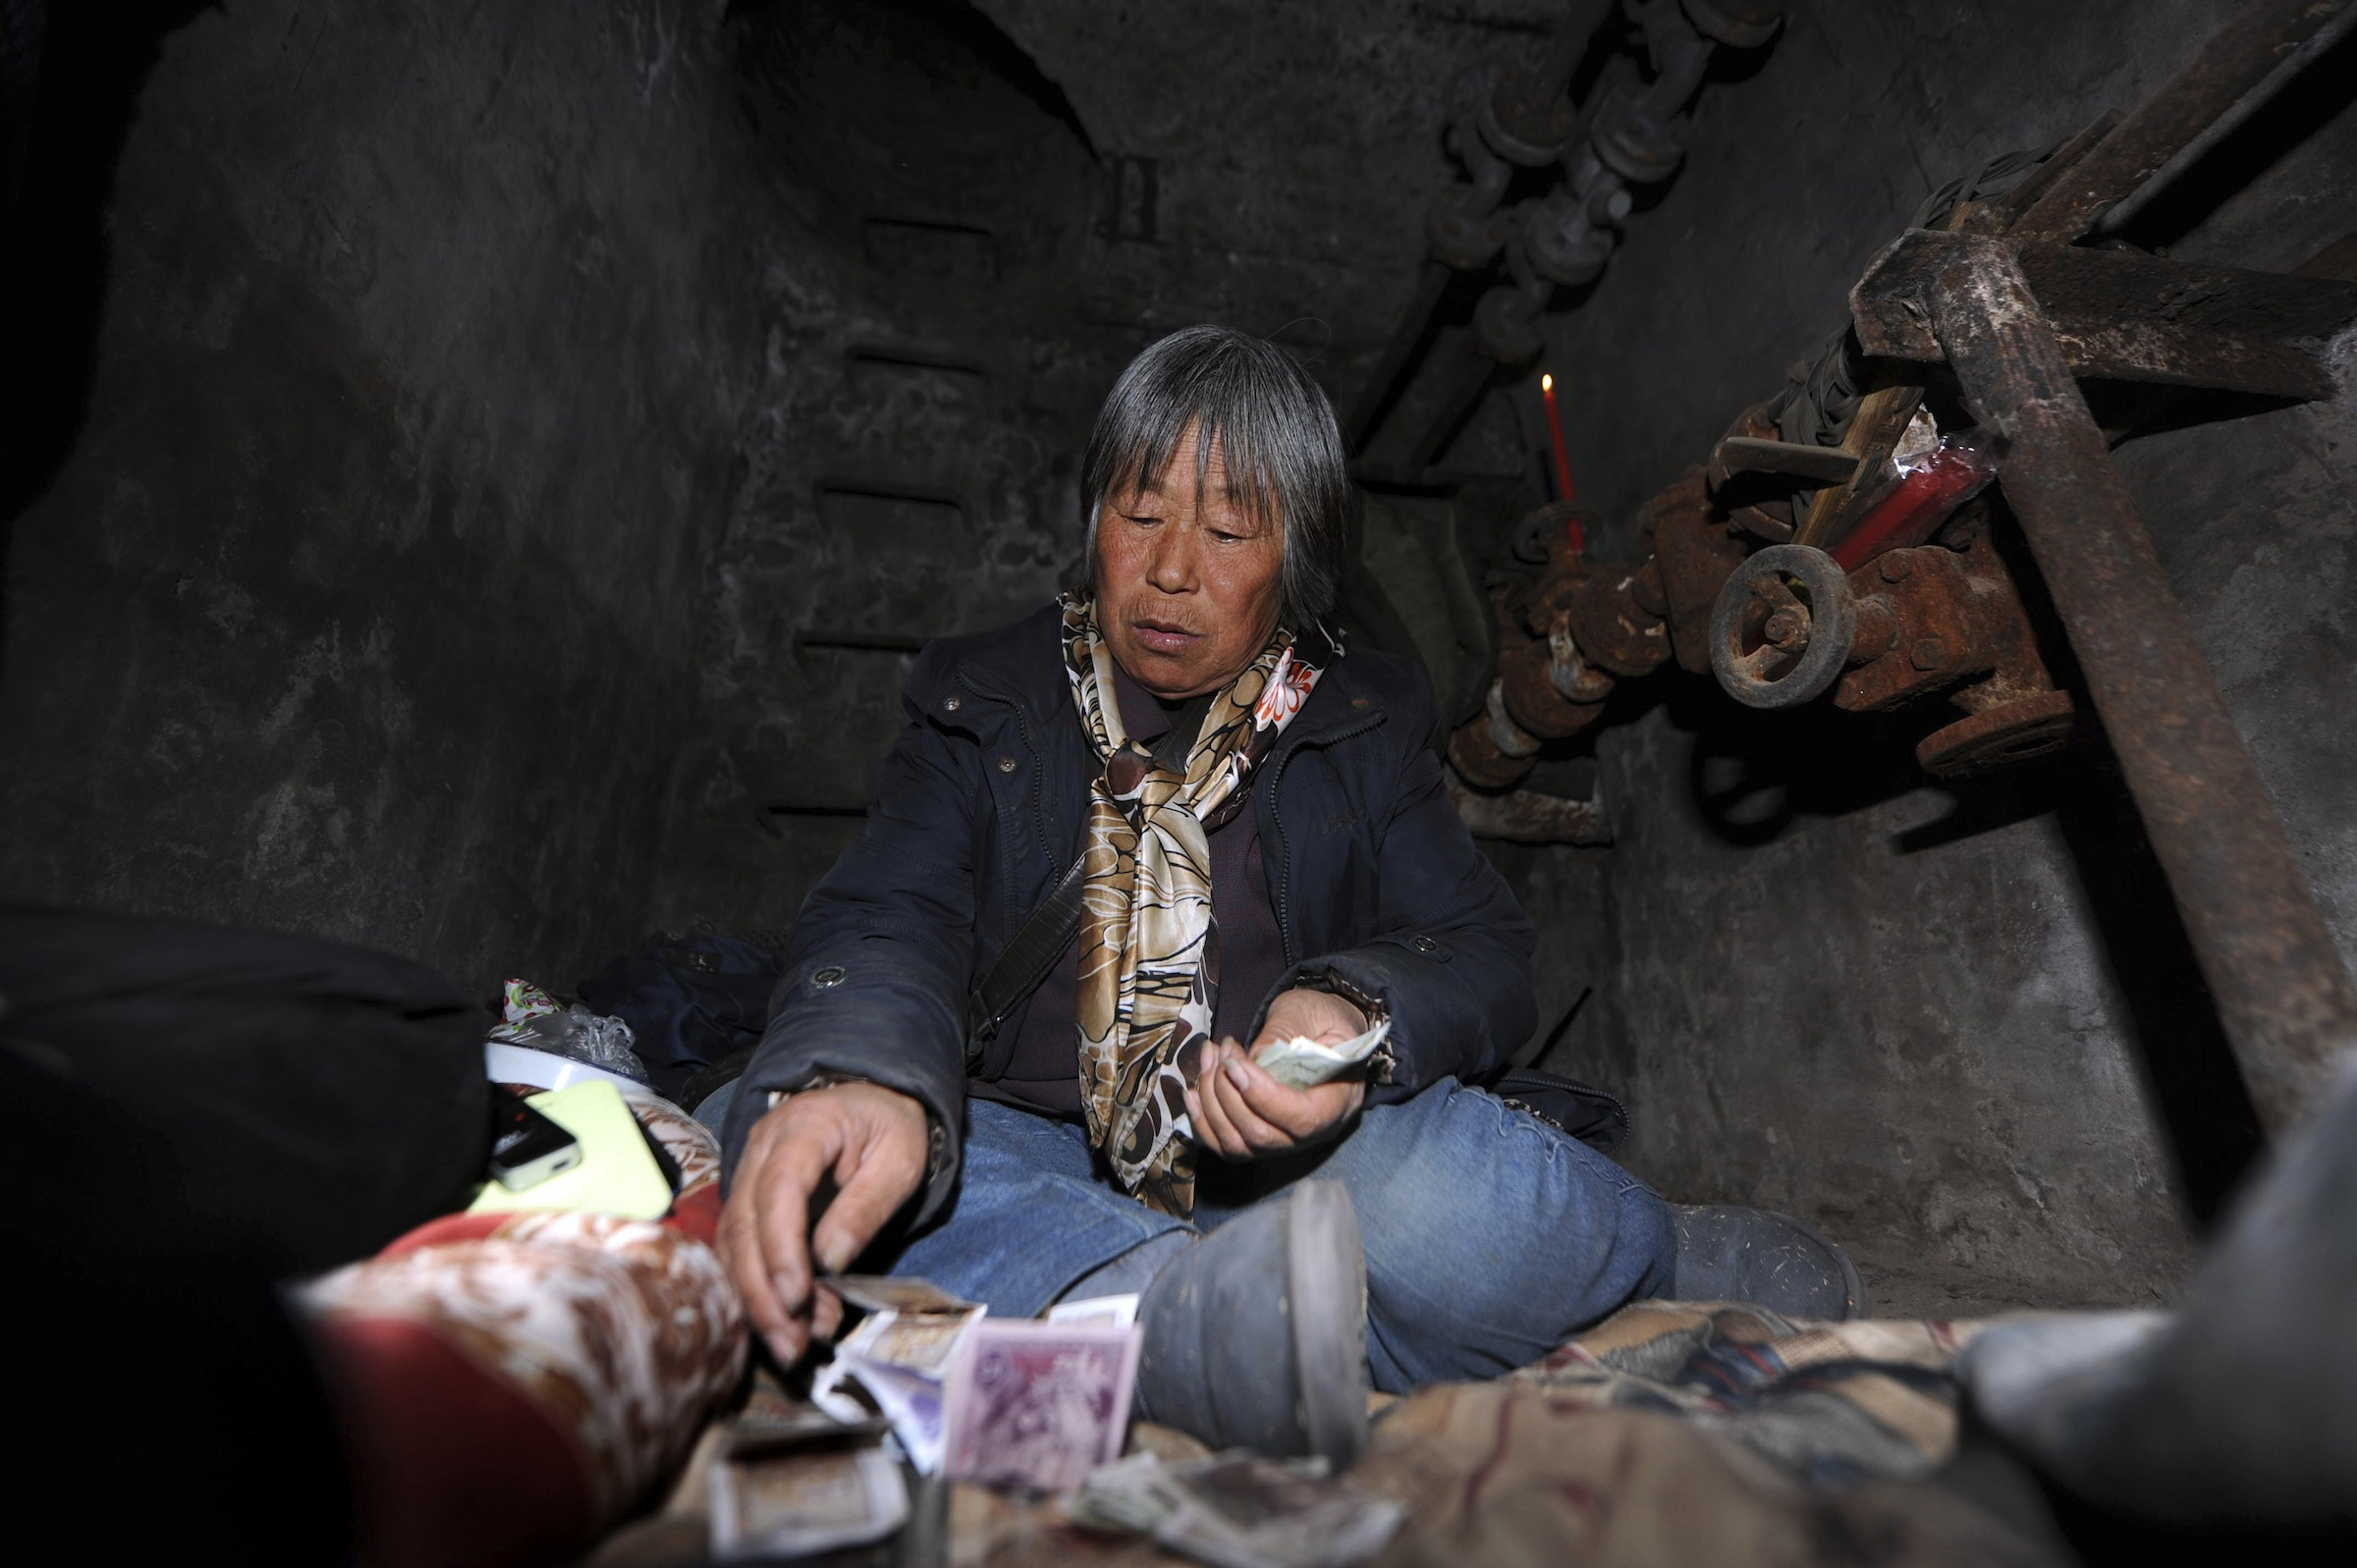 Quan Youzhi, 66, counts money in her dwelling inside an underground shaft in Beijing, December 5, 2013. According to local media, around five underground shafts, in which people were living in, were blocked by city officials on Friday morning at a neighbourhood in Beijing. One of the dwellers, Quan Youzhi, 66, has been living in the shafts, which were originally used for the city's heating system, for around 20 years as she could not afford to pay rent for housing after she came to Beijing, and has since relocated several times after being chased away by law enforcement officials. Quan supports herself with about 10 yuan ($1.64) daily, which she makes from collecting waste bottles. Picture taken December 5, 2013.